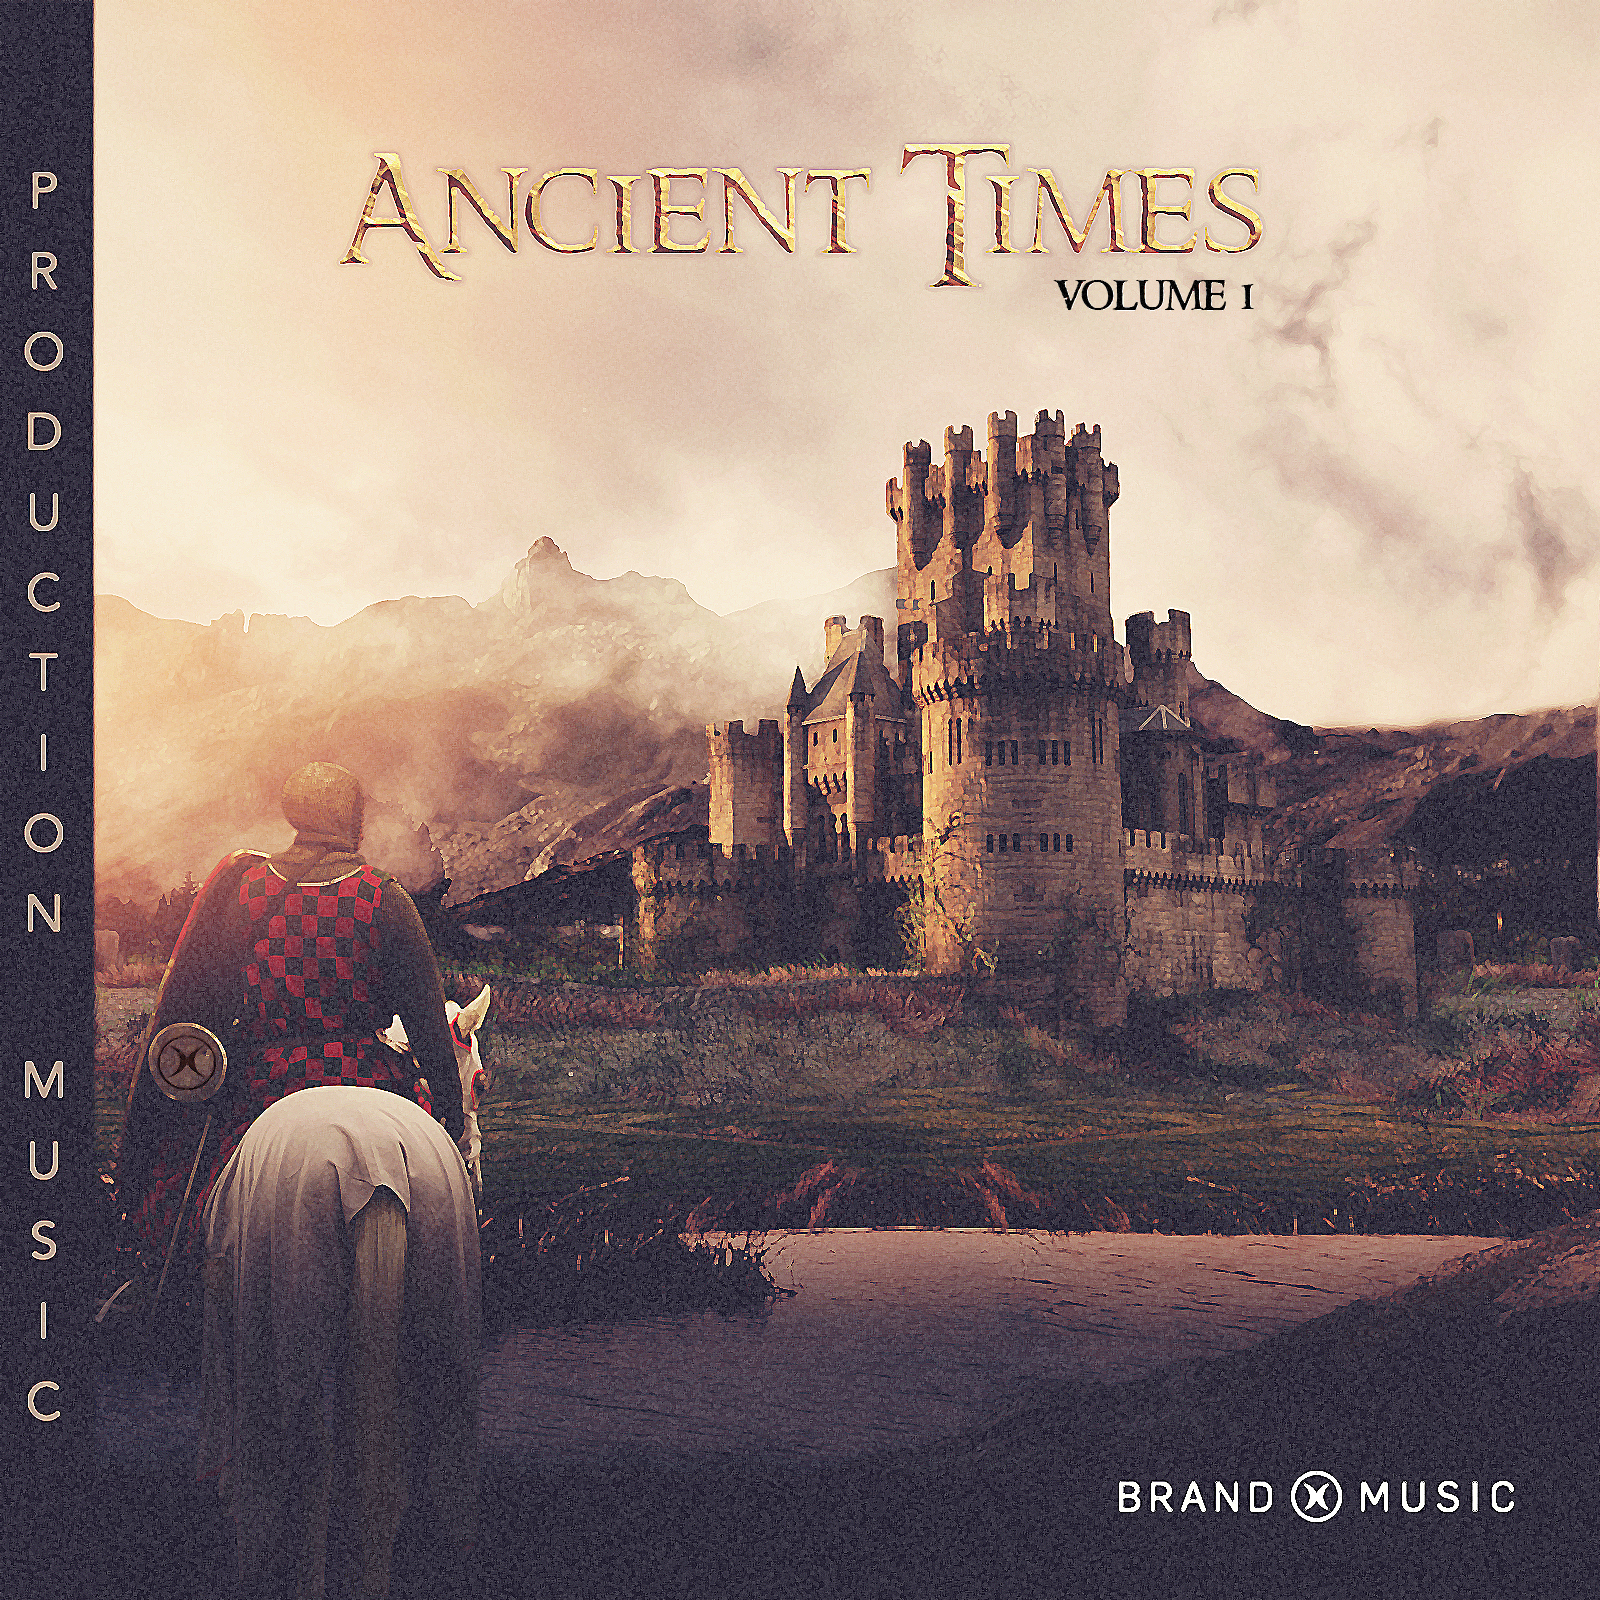 Ancient Times Volume 1